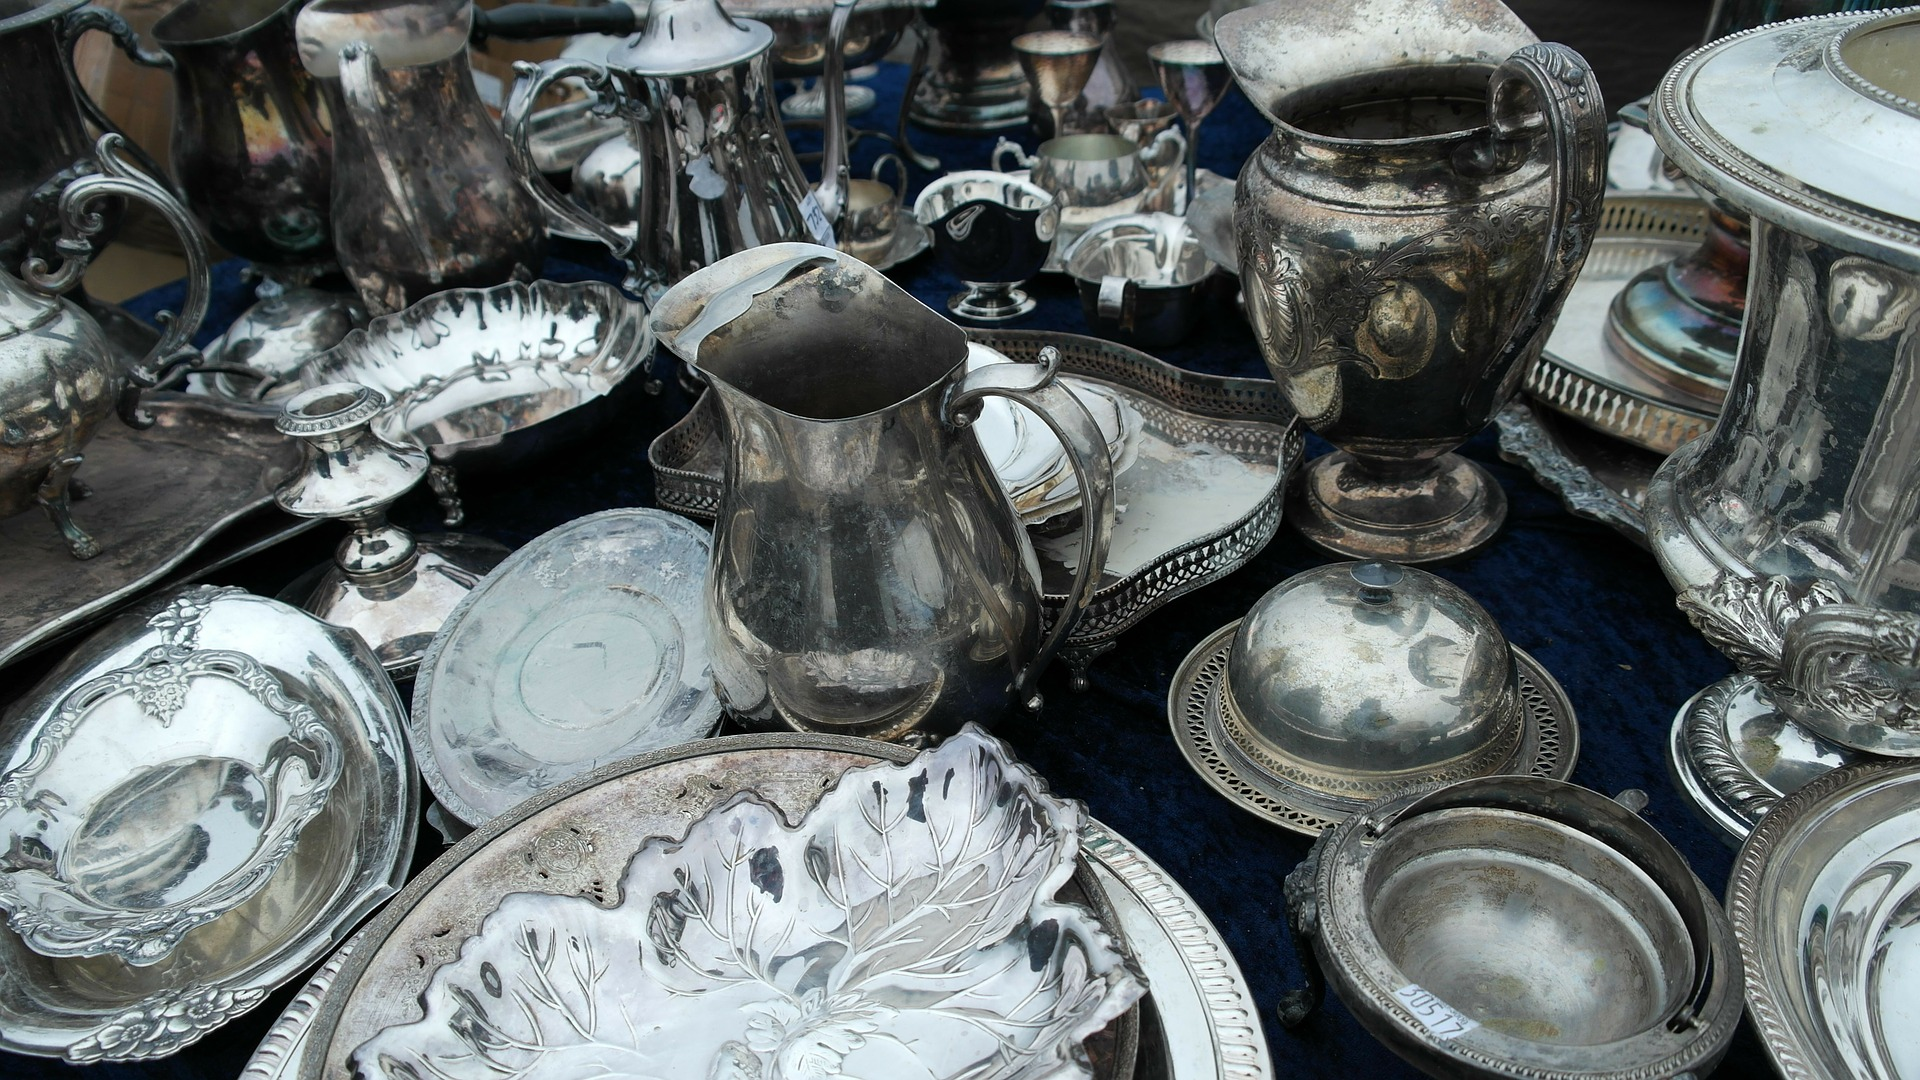 Arizona's 8 Most Awaited and Highly Anticipated Flea Markets for 2016